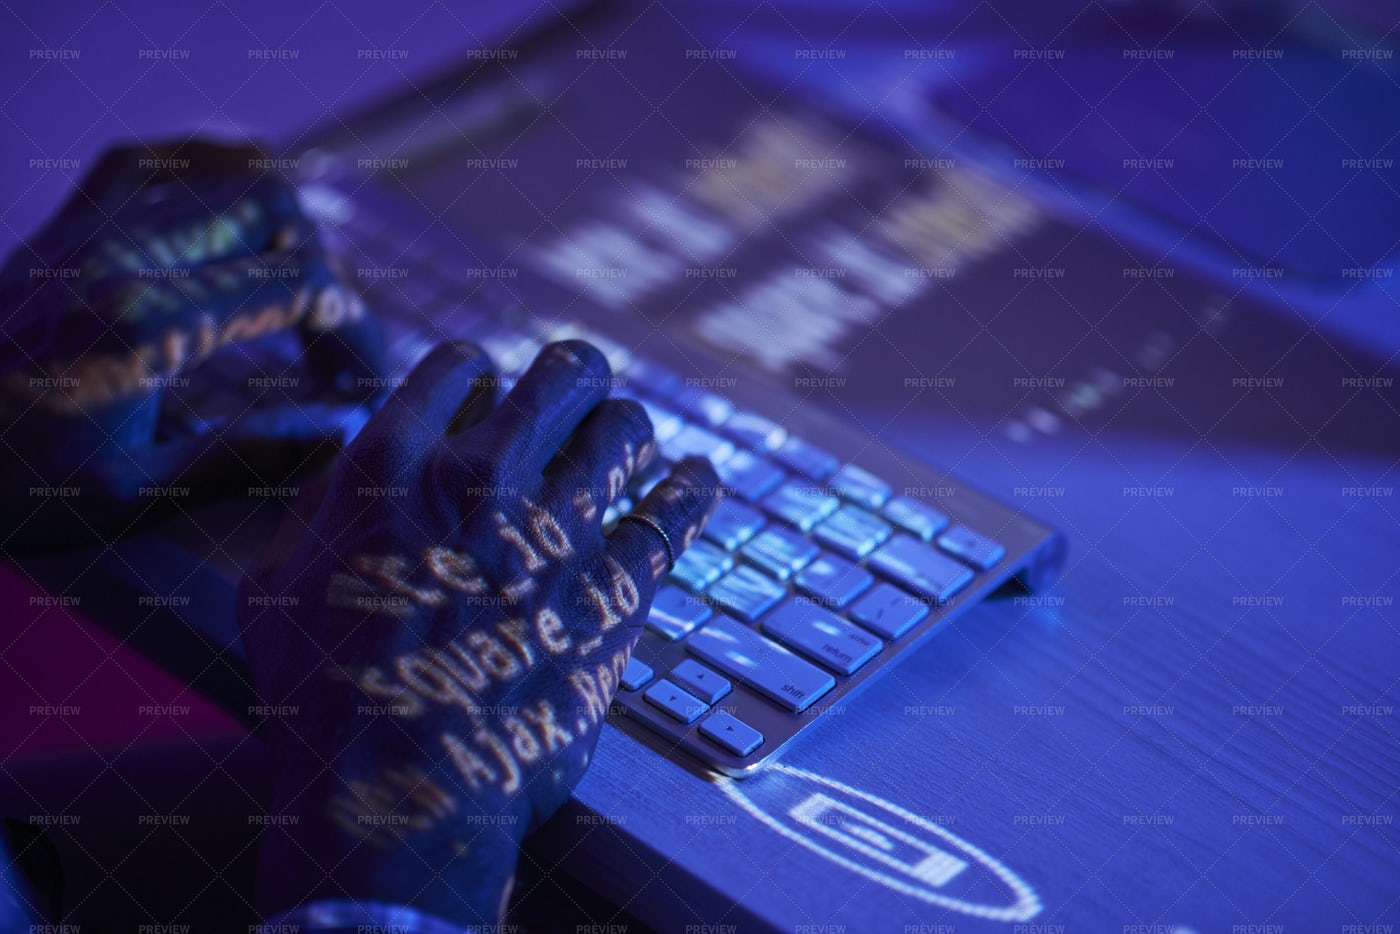 Programmer Typing On Computer: Stock Photos